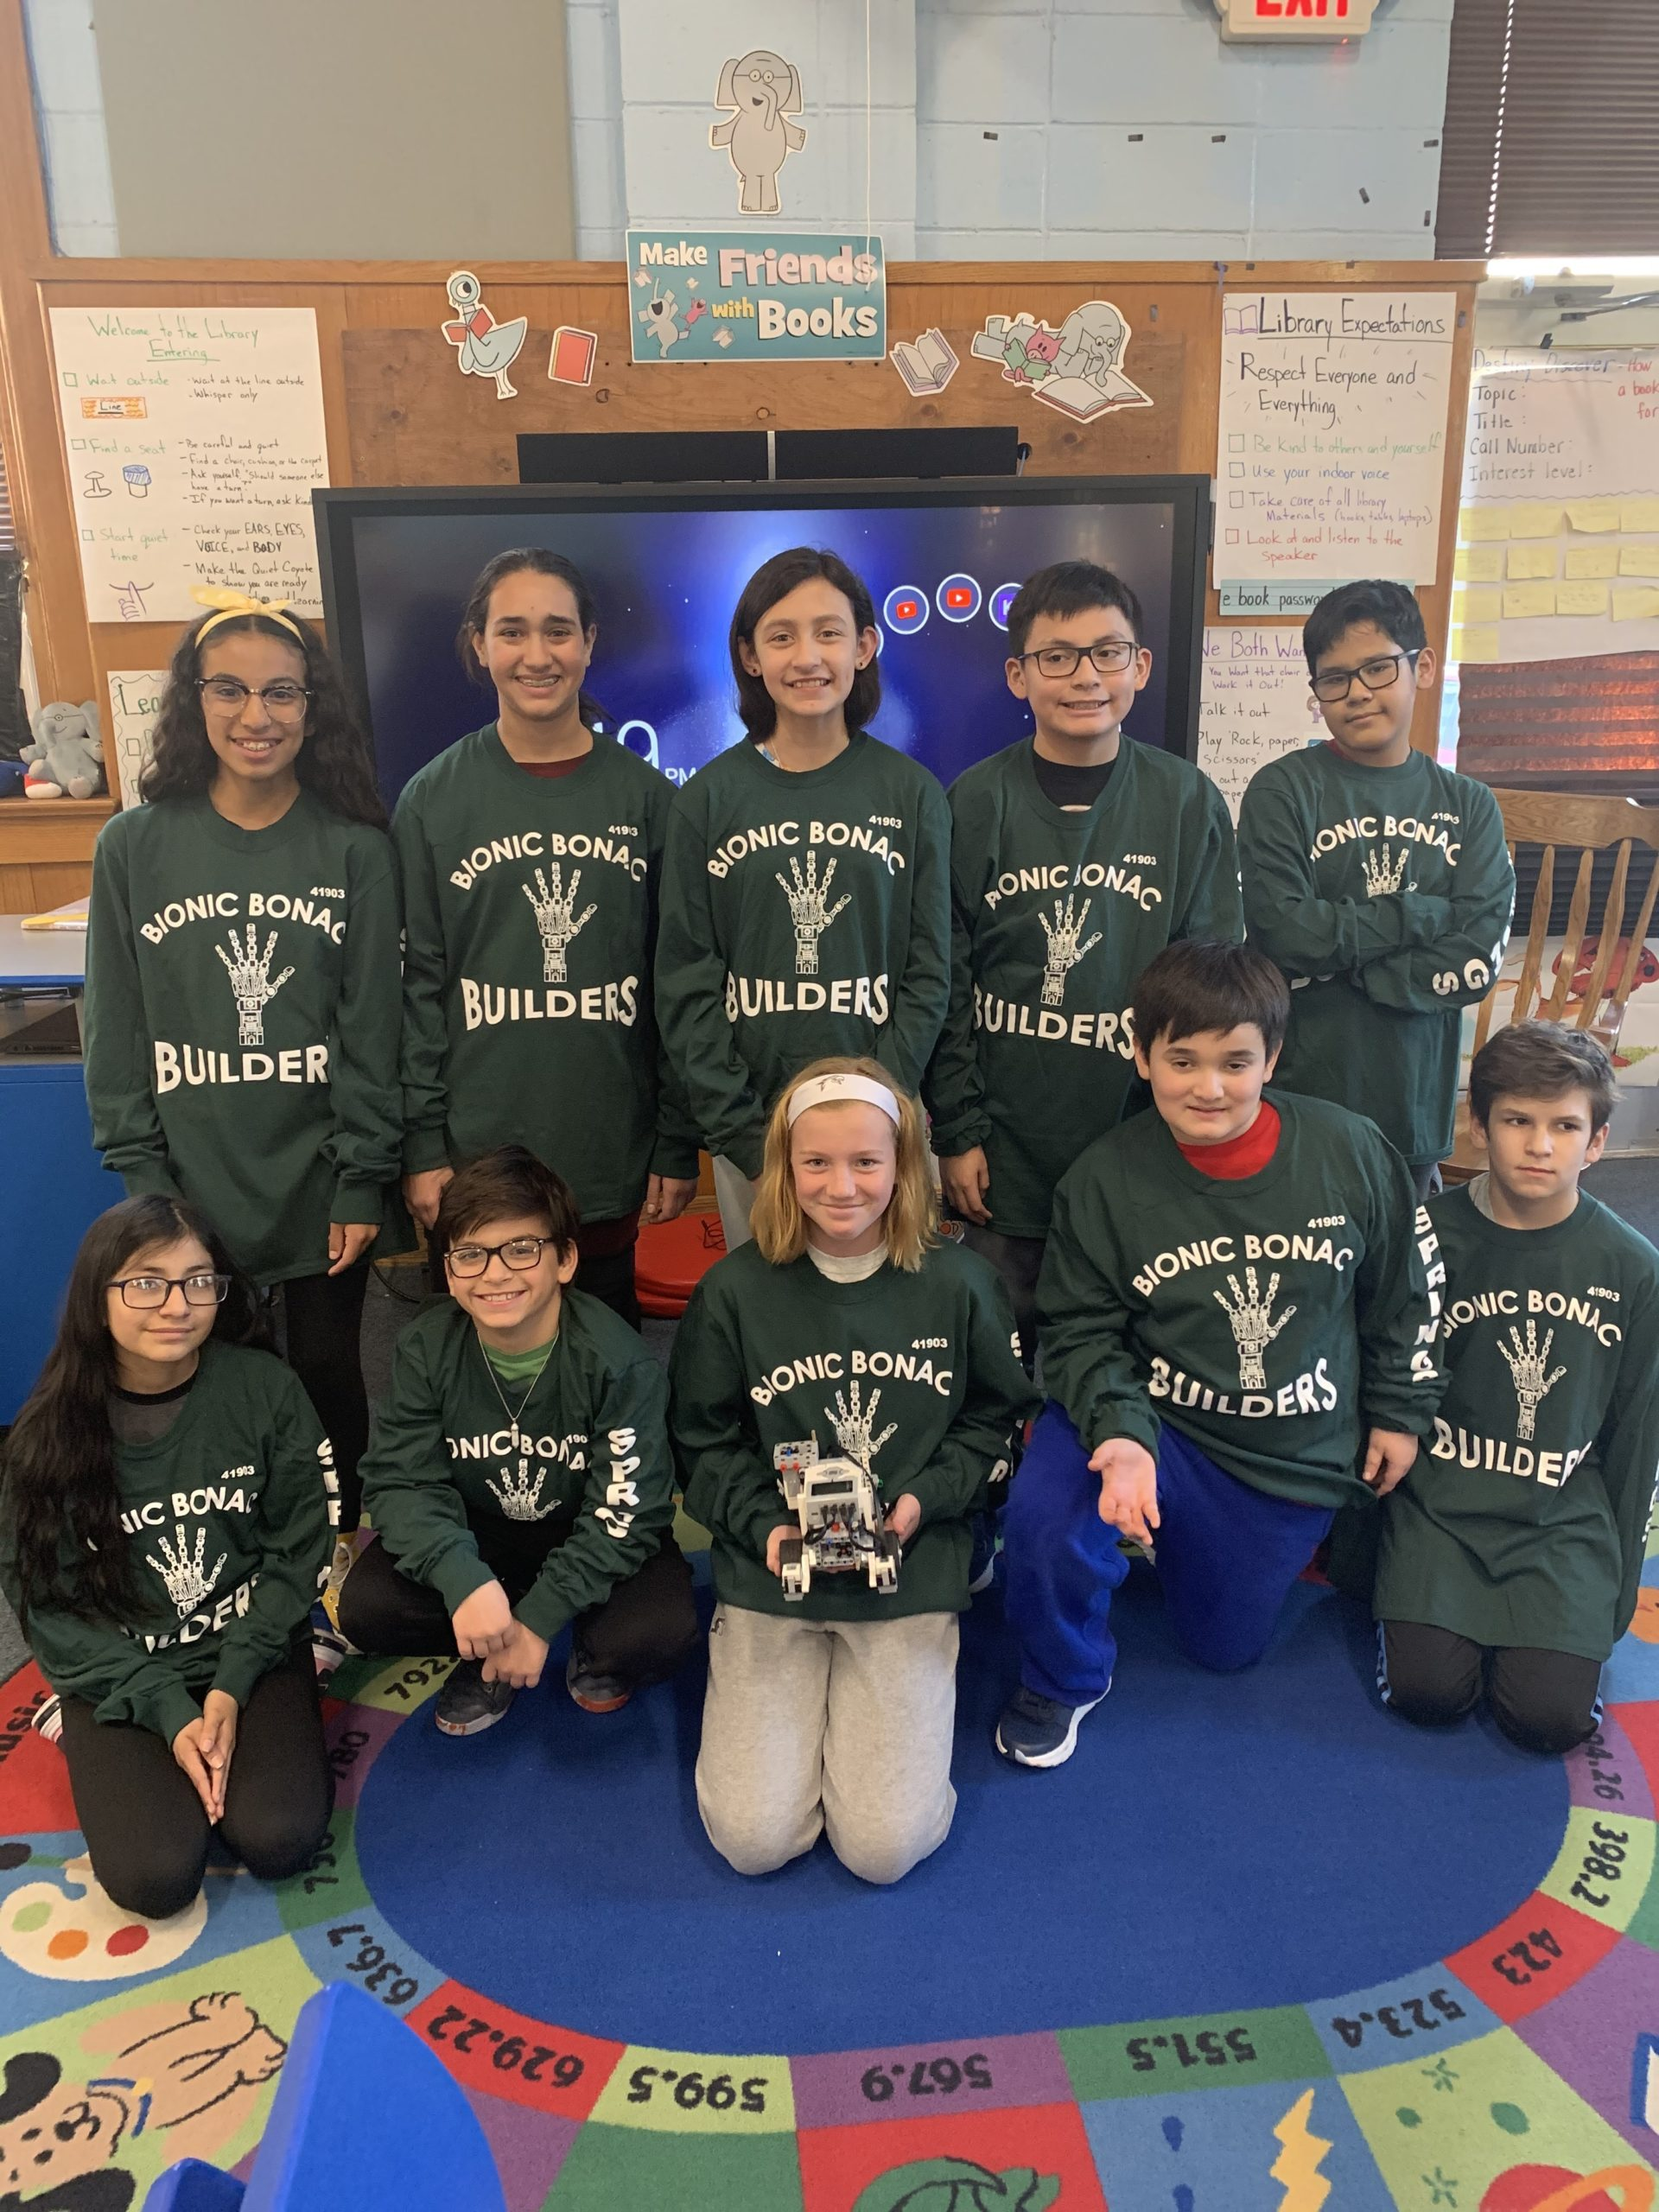 Springs School's Bionic Bonac Builders Lego Robotics team was one of three of the school's teams to face its first competition in Huntington last weekend.